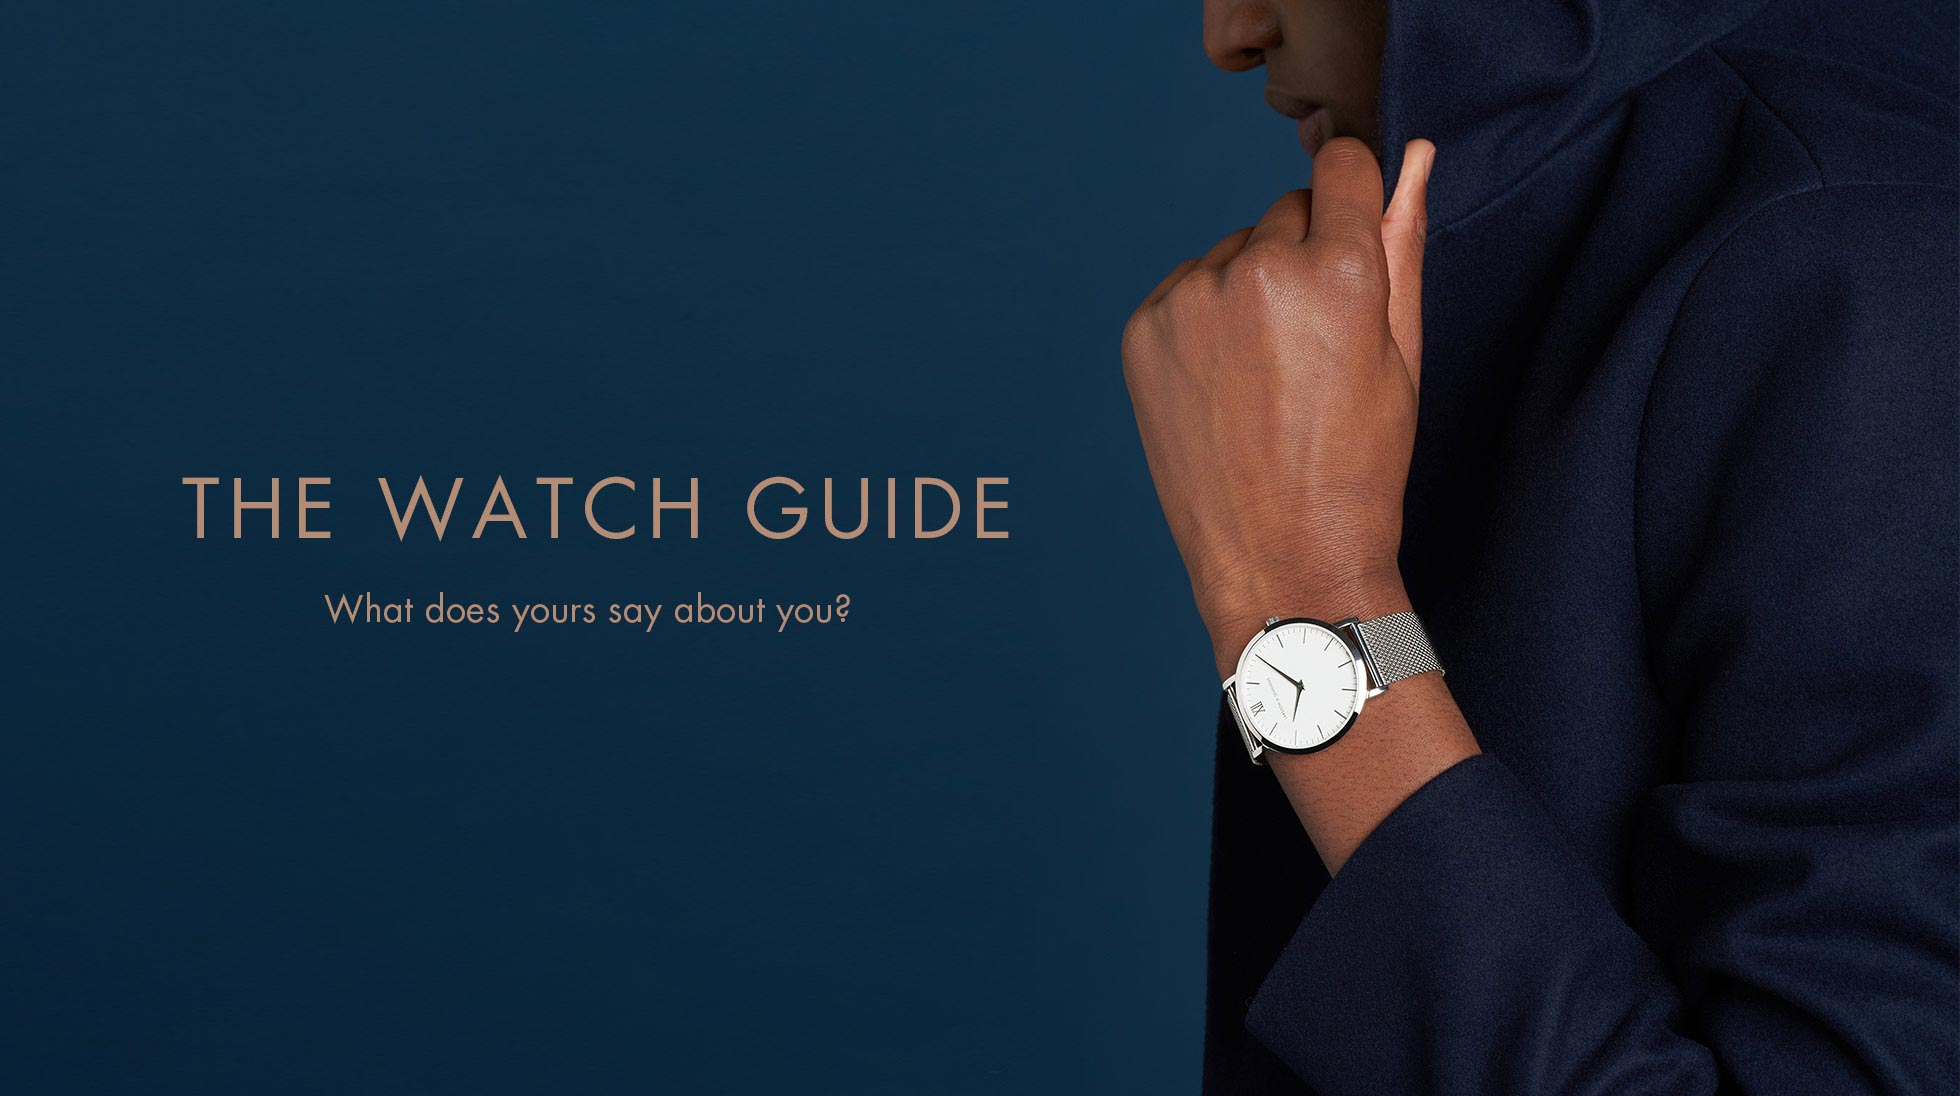 THE WATCH GUIDE